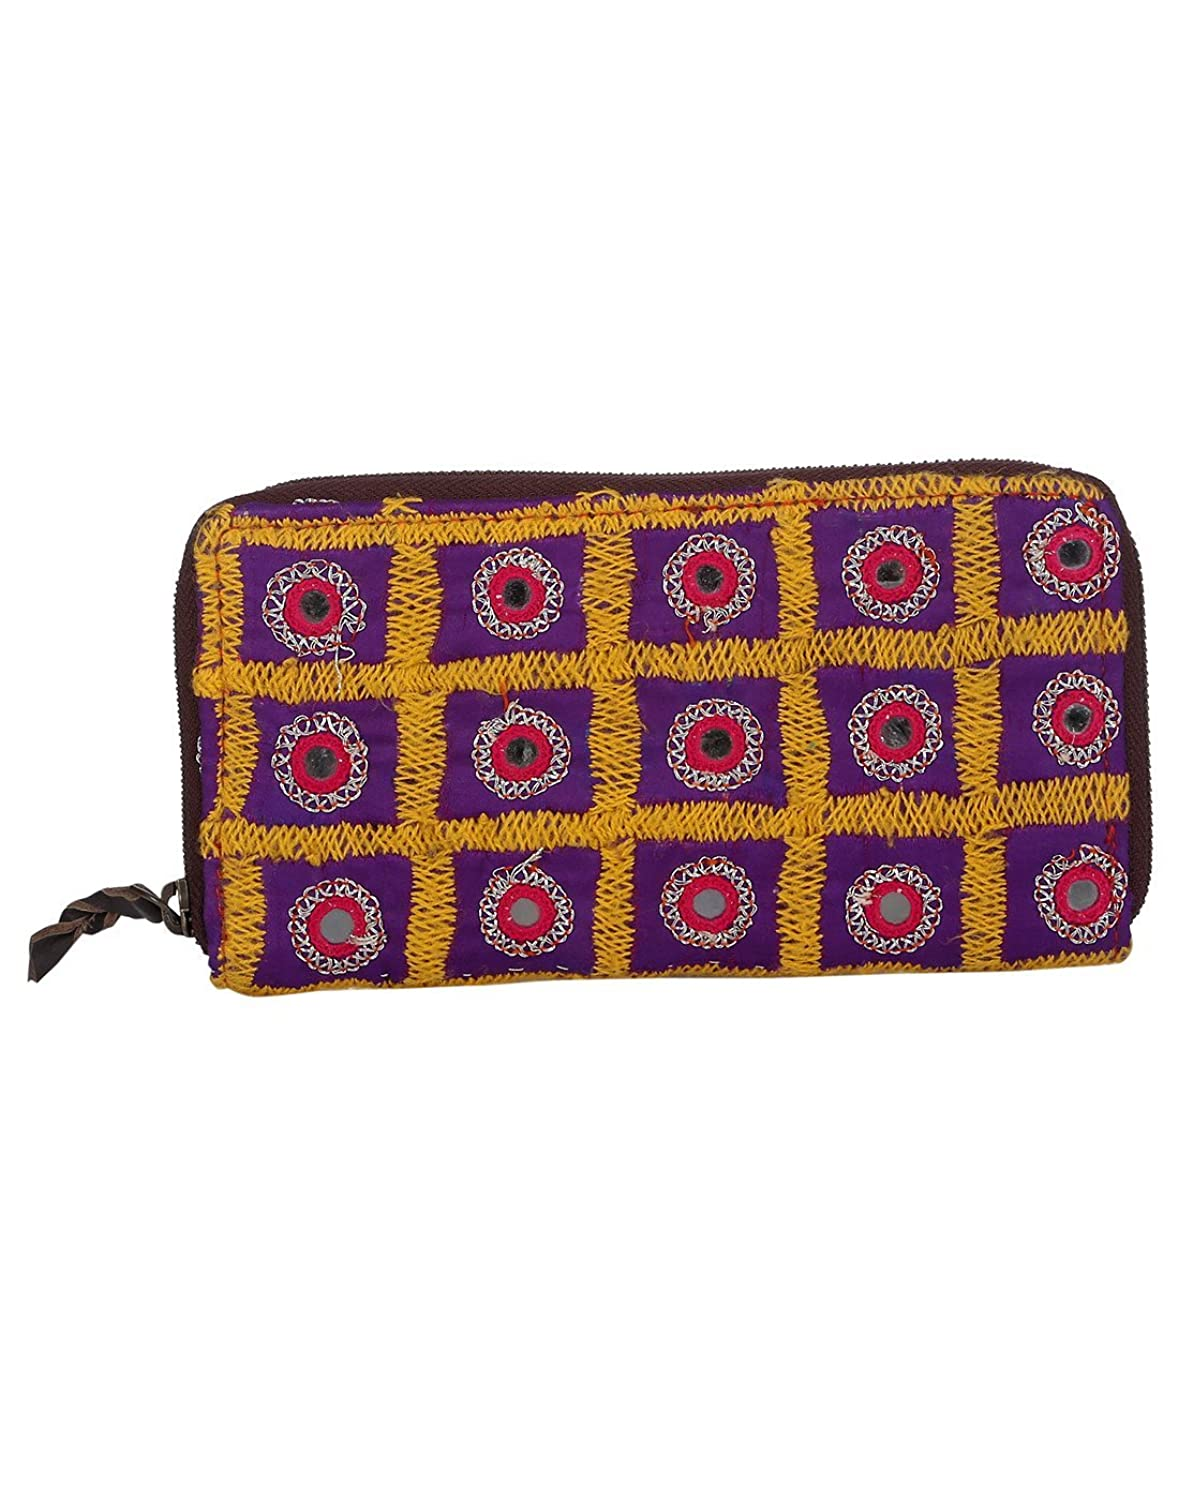 Antique Clutch Bag Vintage Hand Embroidered Cotton Bag For Women By Rajrang